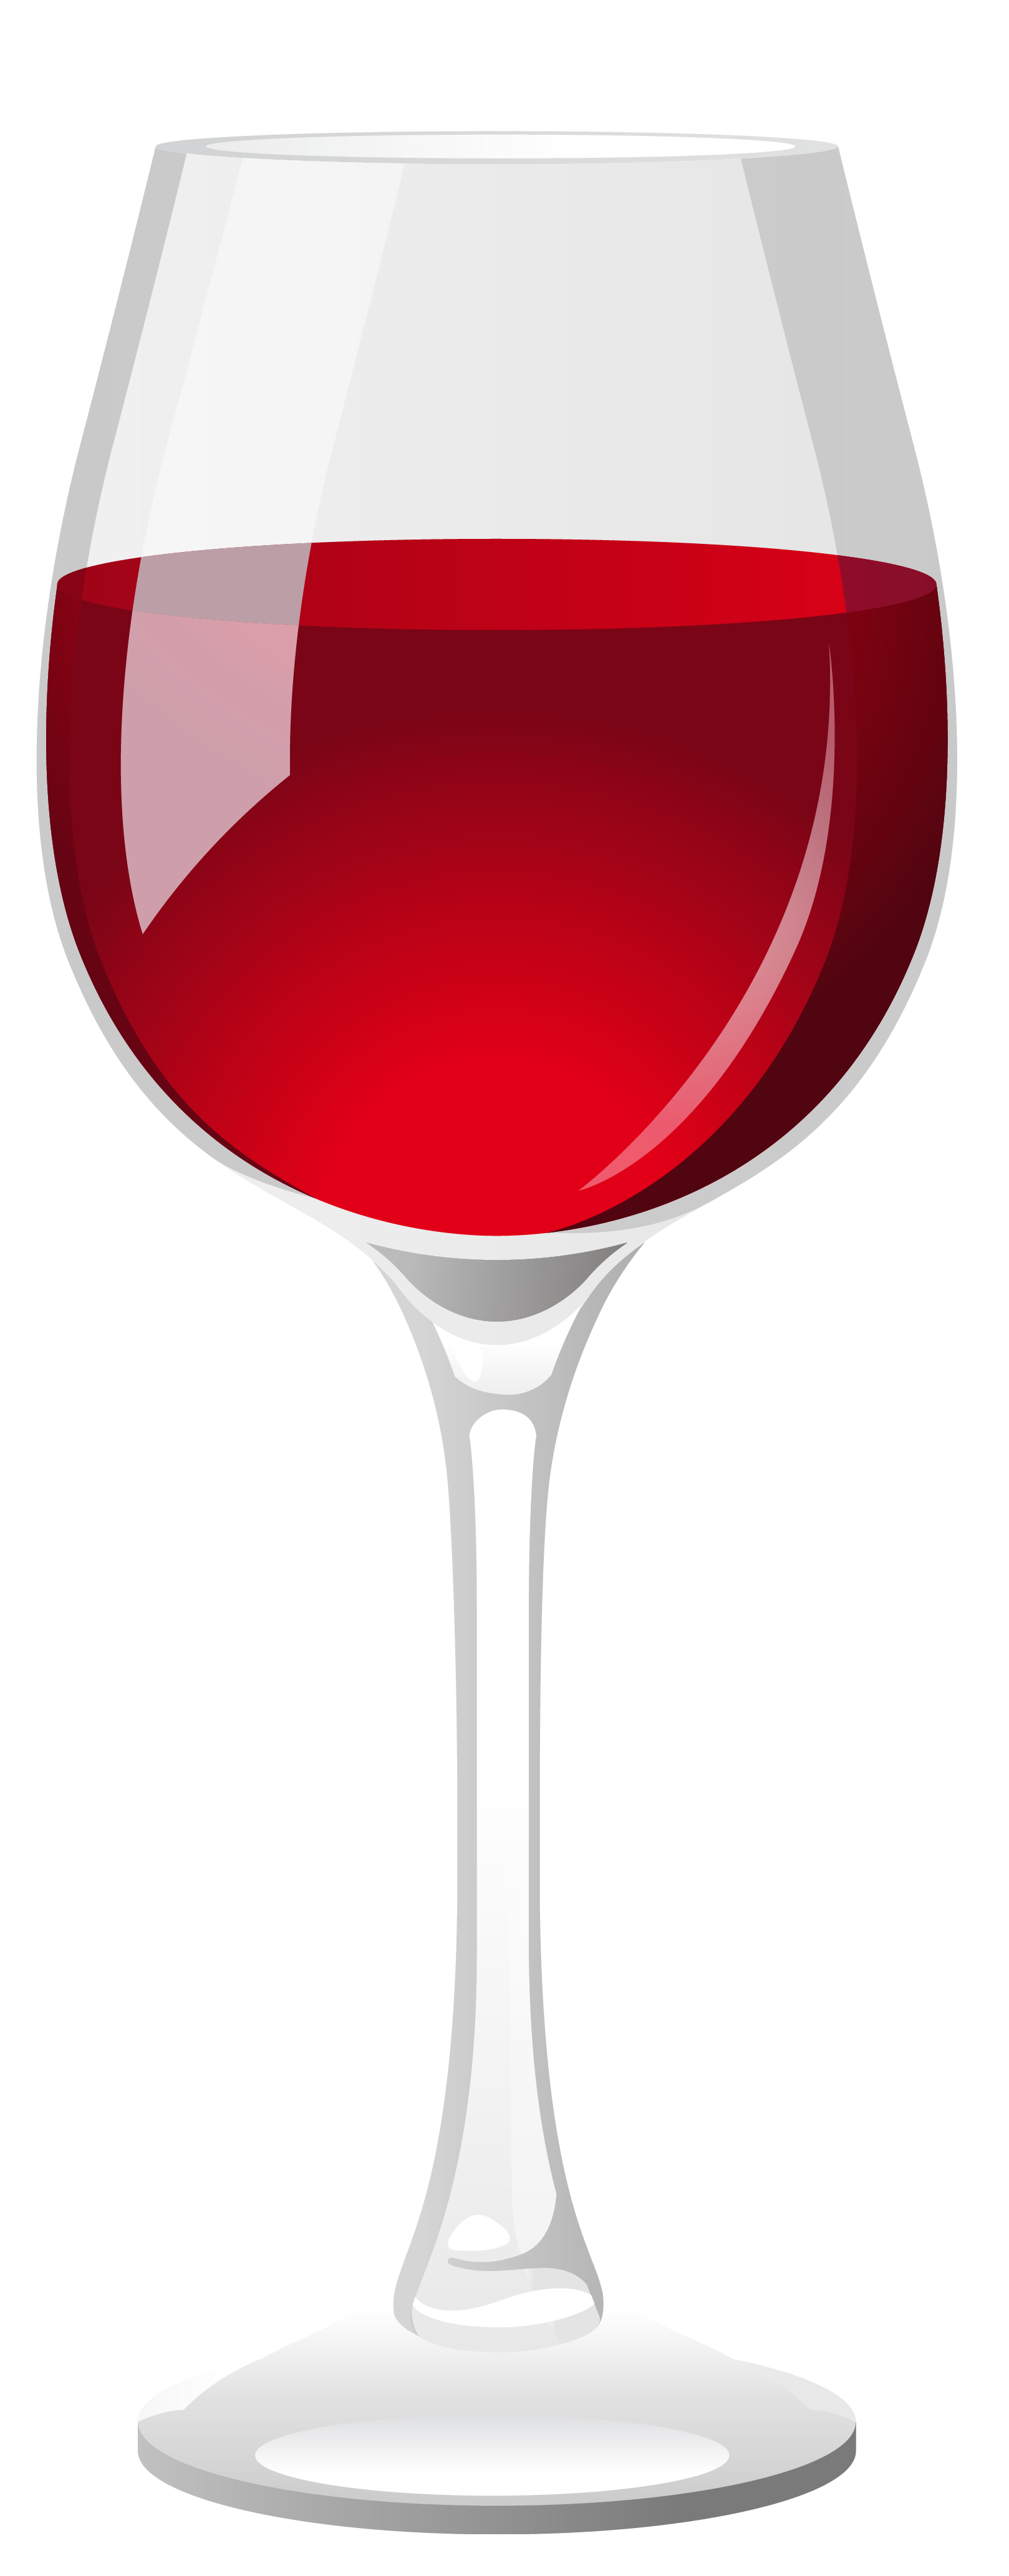 Icon Download Wine Glass image #31811